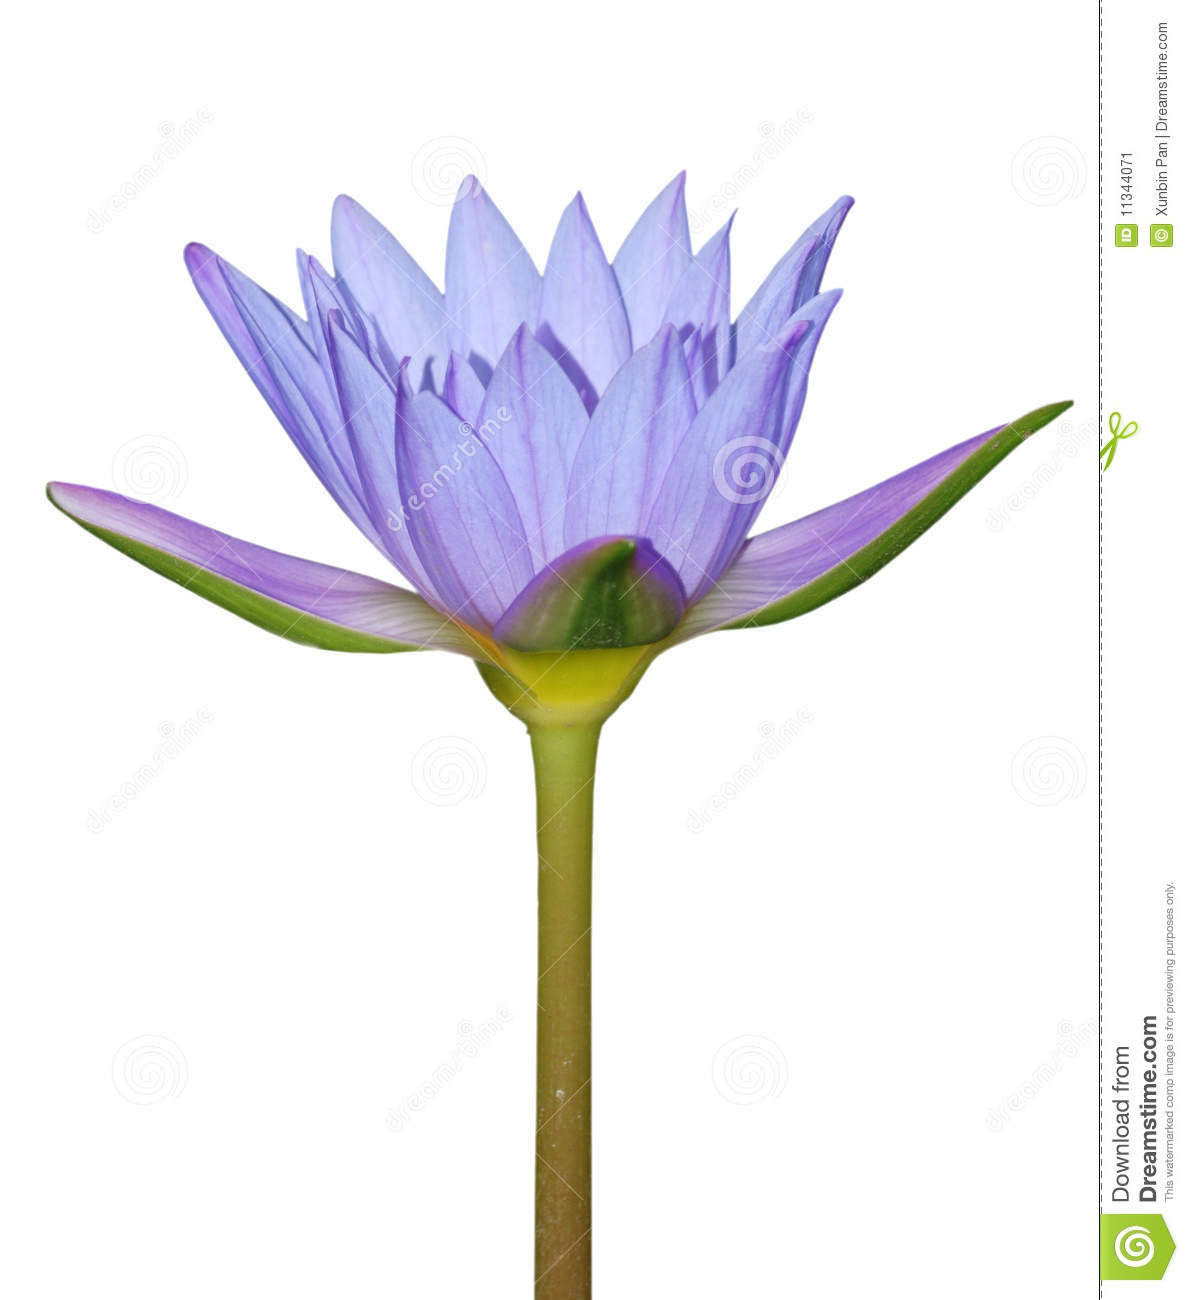 Blue water lily flower stock image image of bloom lily 11344071 download blue water lily flower stock image image of bloom lily 11344071 izmirmasajfo